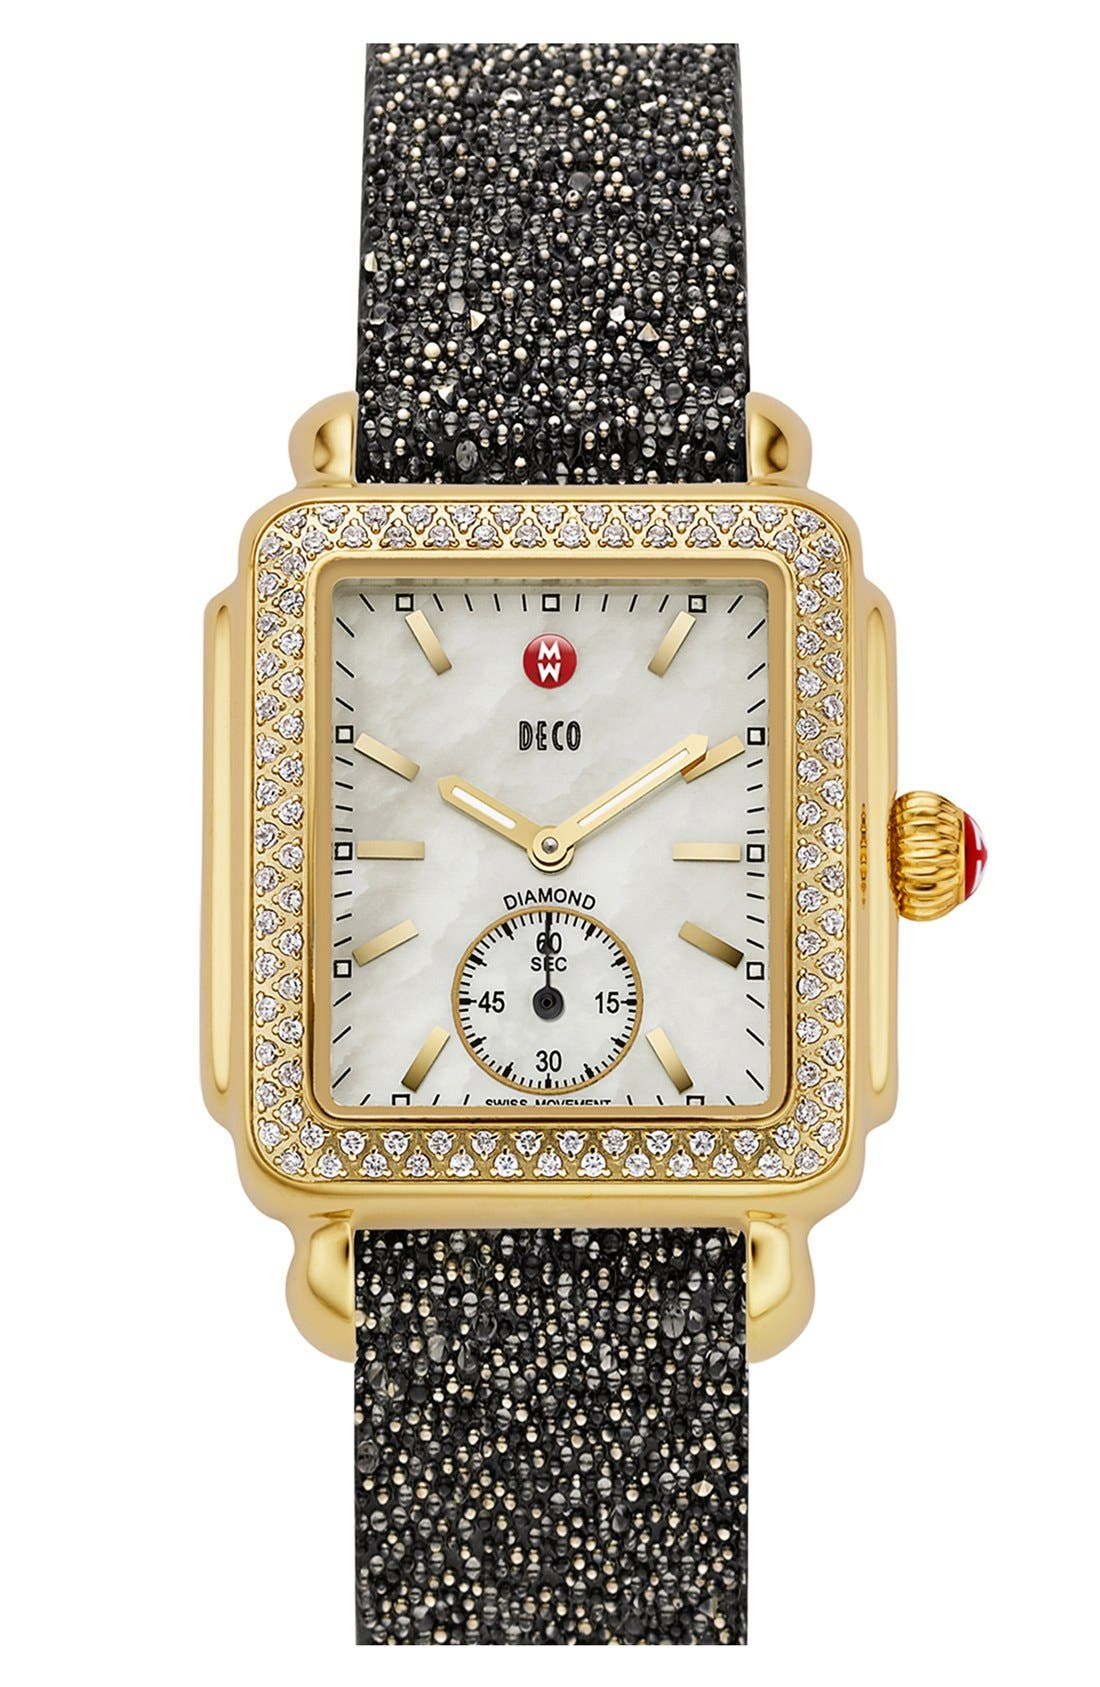 MICHELE, Deco 16 Diamond Gold Plated Watch Head, 29mm x 31mm, Alternate thumbnail 5, color, GOLD